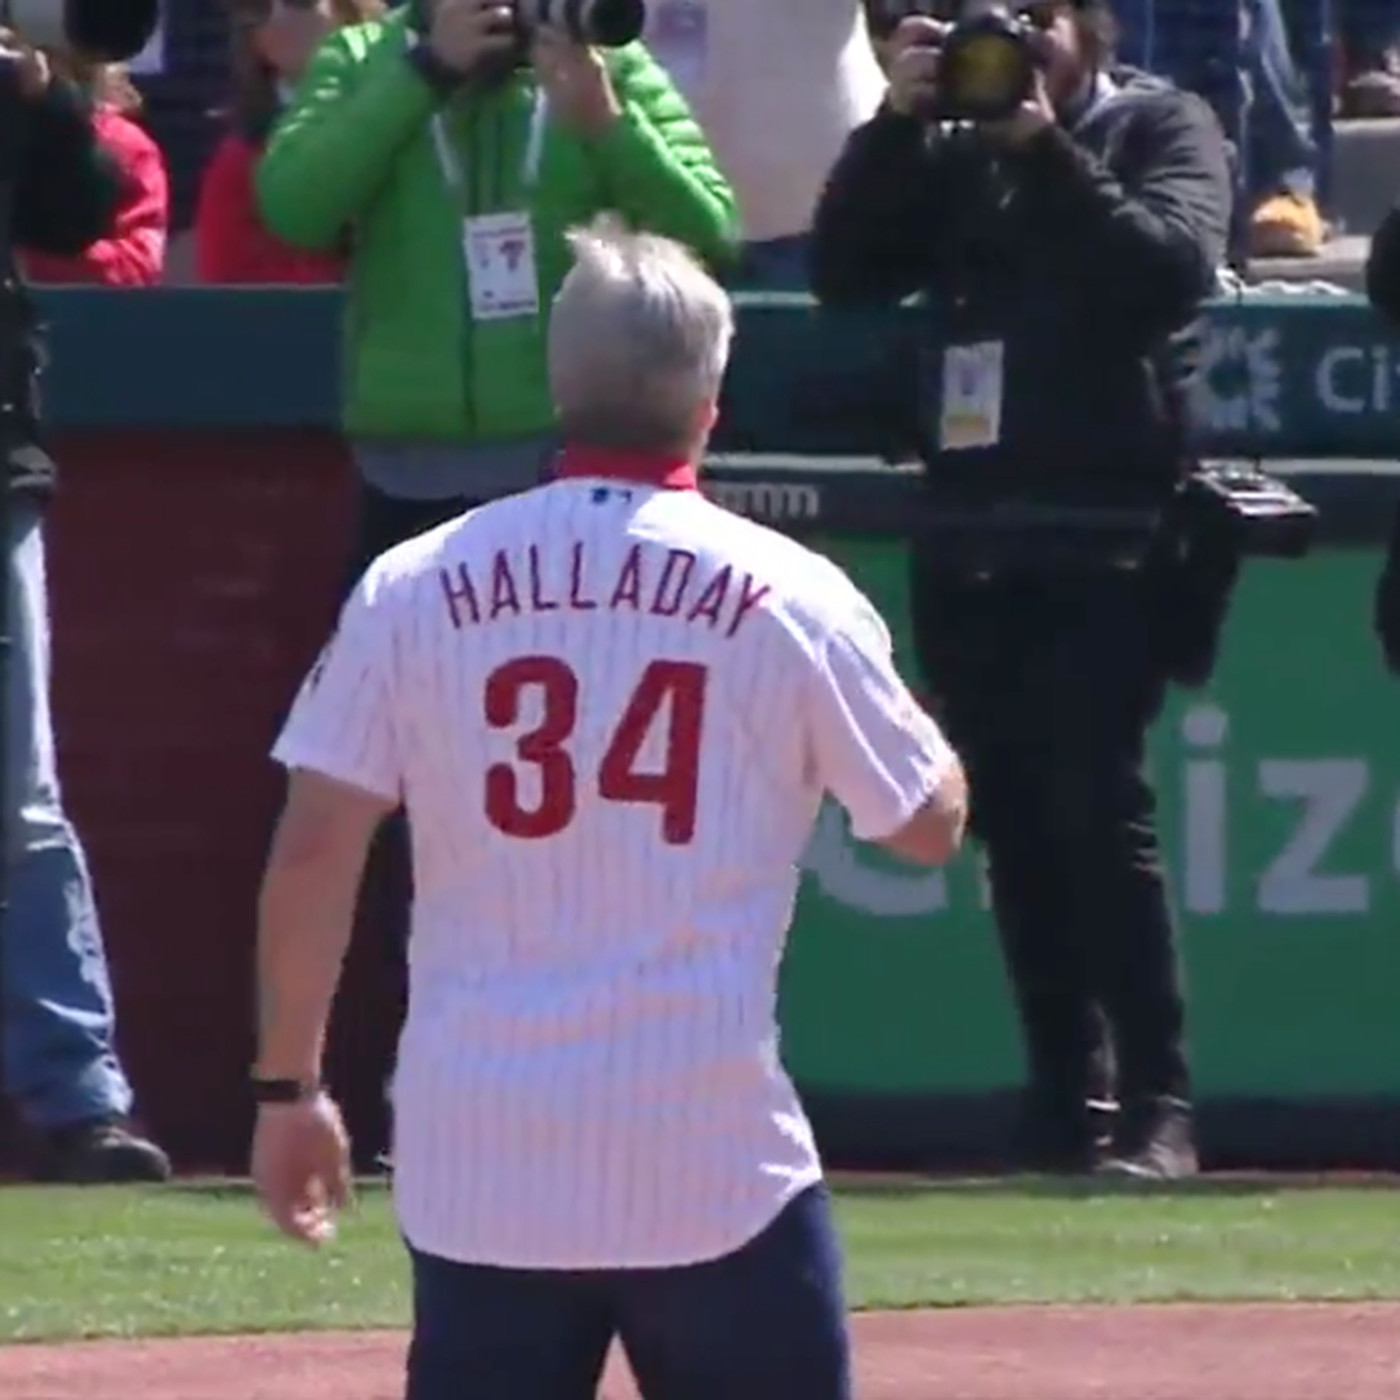 Doug Pederson threw out the first pitch for the Phillies in a Roy Halladay  jersey d440946352f